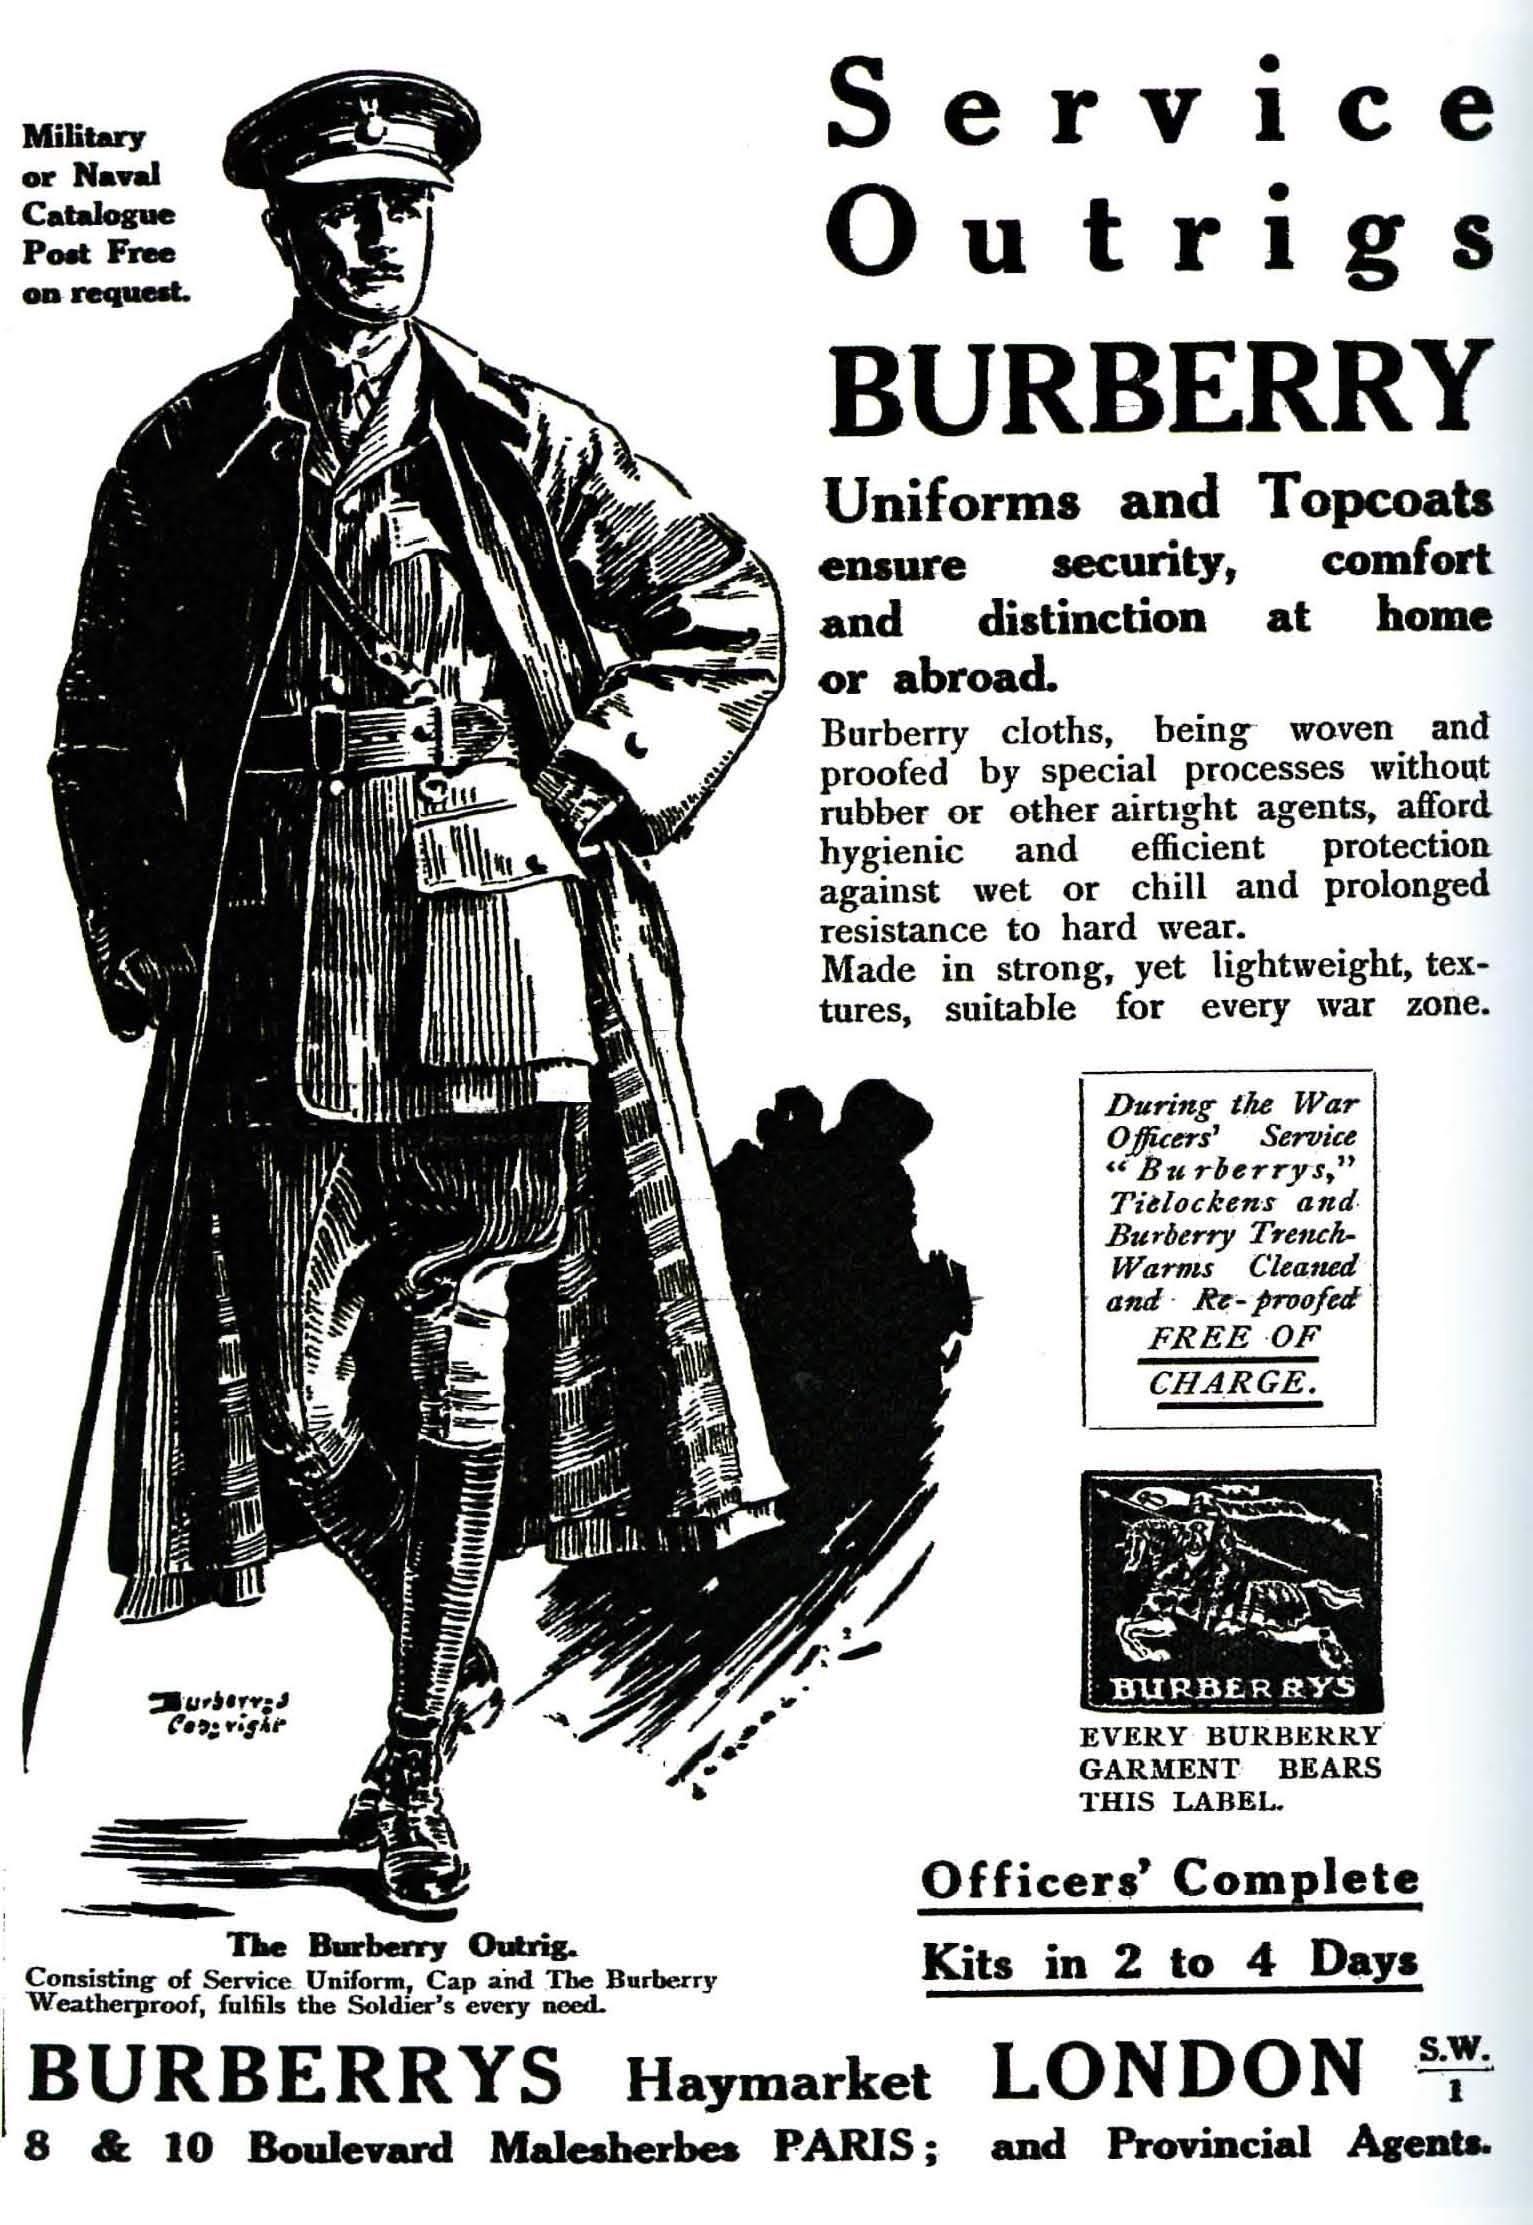 Burberry ad with the iconic trench coat from WW1